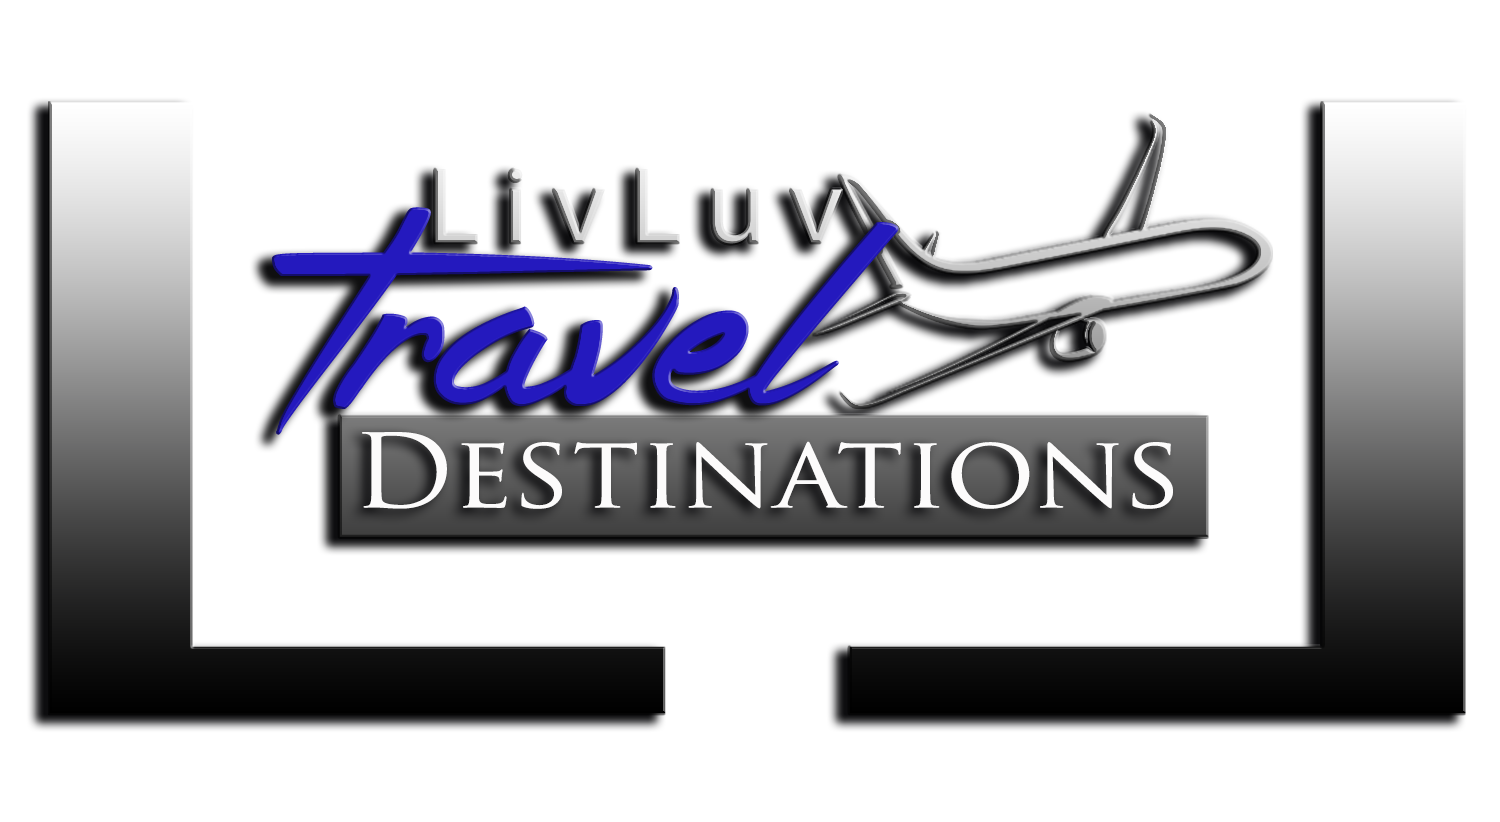 Your Premier Travel Destination Headquarters